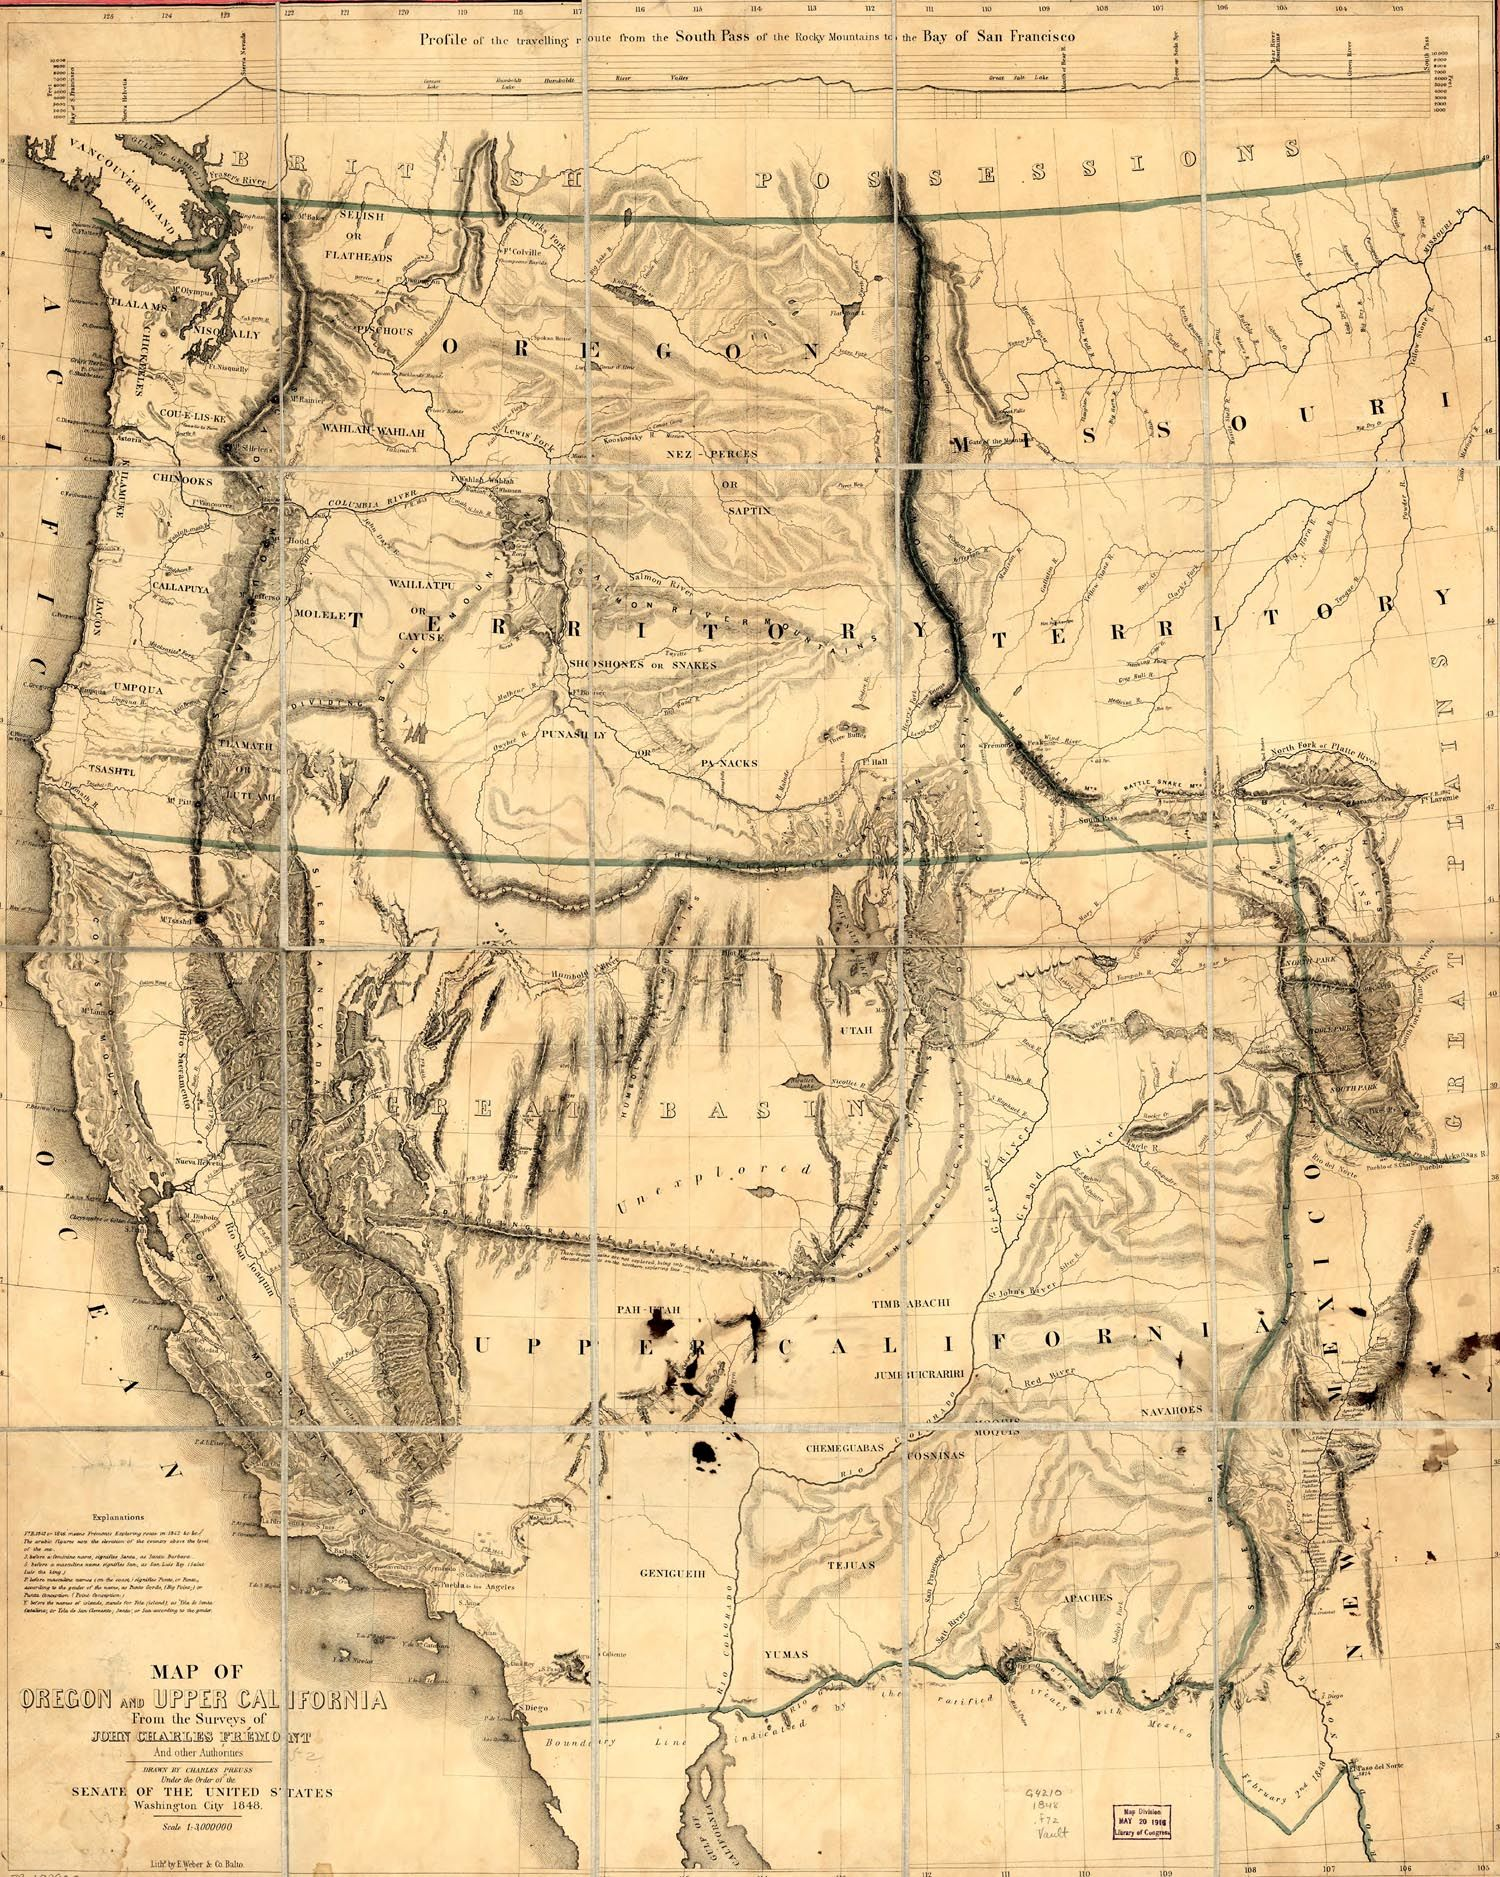 Map of Oregon and Upper California: 1848. From the Surveys of John Yellowed Map Of California And Nevada on map of boomtown nevada, map of nevada usa nuketown, map of wyoming cities and towns, map of nevada minerals, map of sierra nevada mountains, detailed map nevada, map of active mines in nevada, lovelock nevada, map of boston and surrounding towns, map of nevada county california, map of nevada reno sparks, show me a map of nevada, map of nevada counties, map of northern nevada, google maps nevada, map of california nevada border, map california-nevada arizona, map of north nevada, driving map of nevada, map of grand canyon nevada,